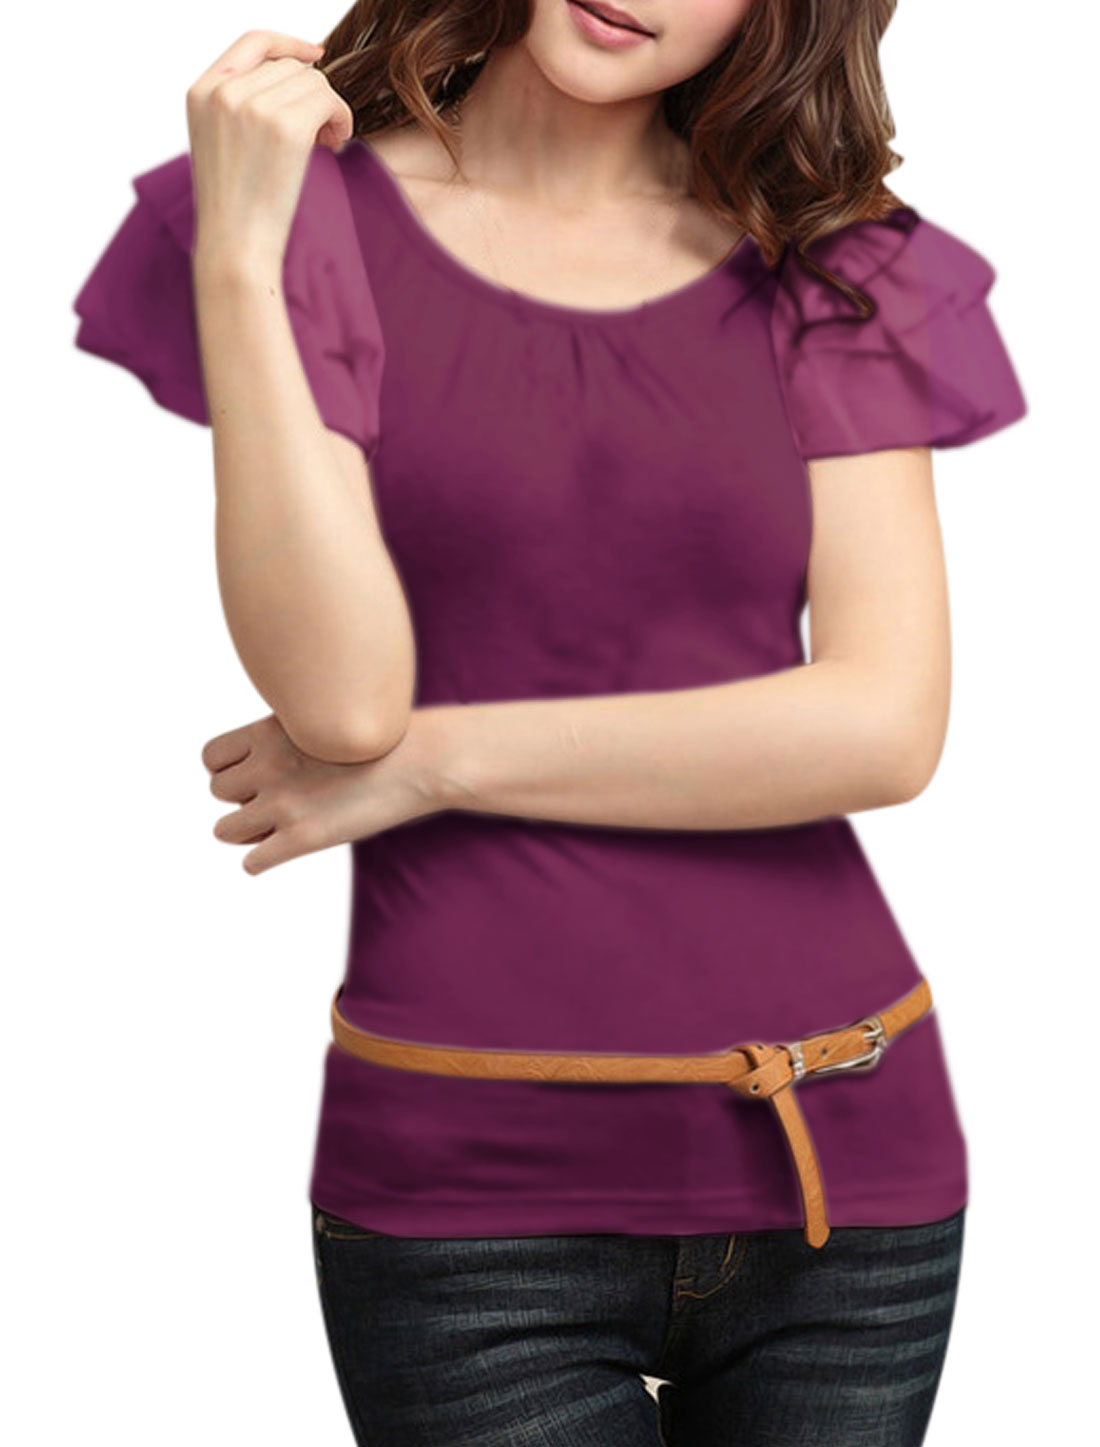 Women U Neck Layered Flouncing Short Sleeve Basic Tee Purple S